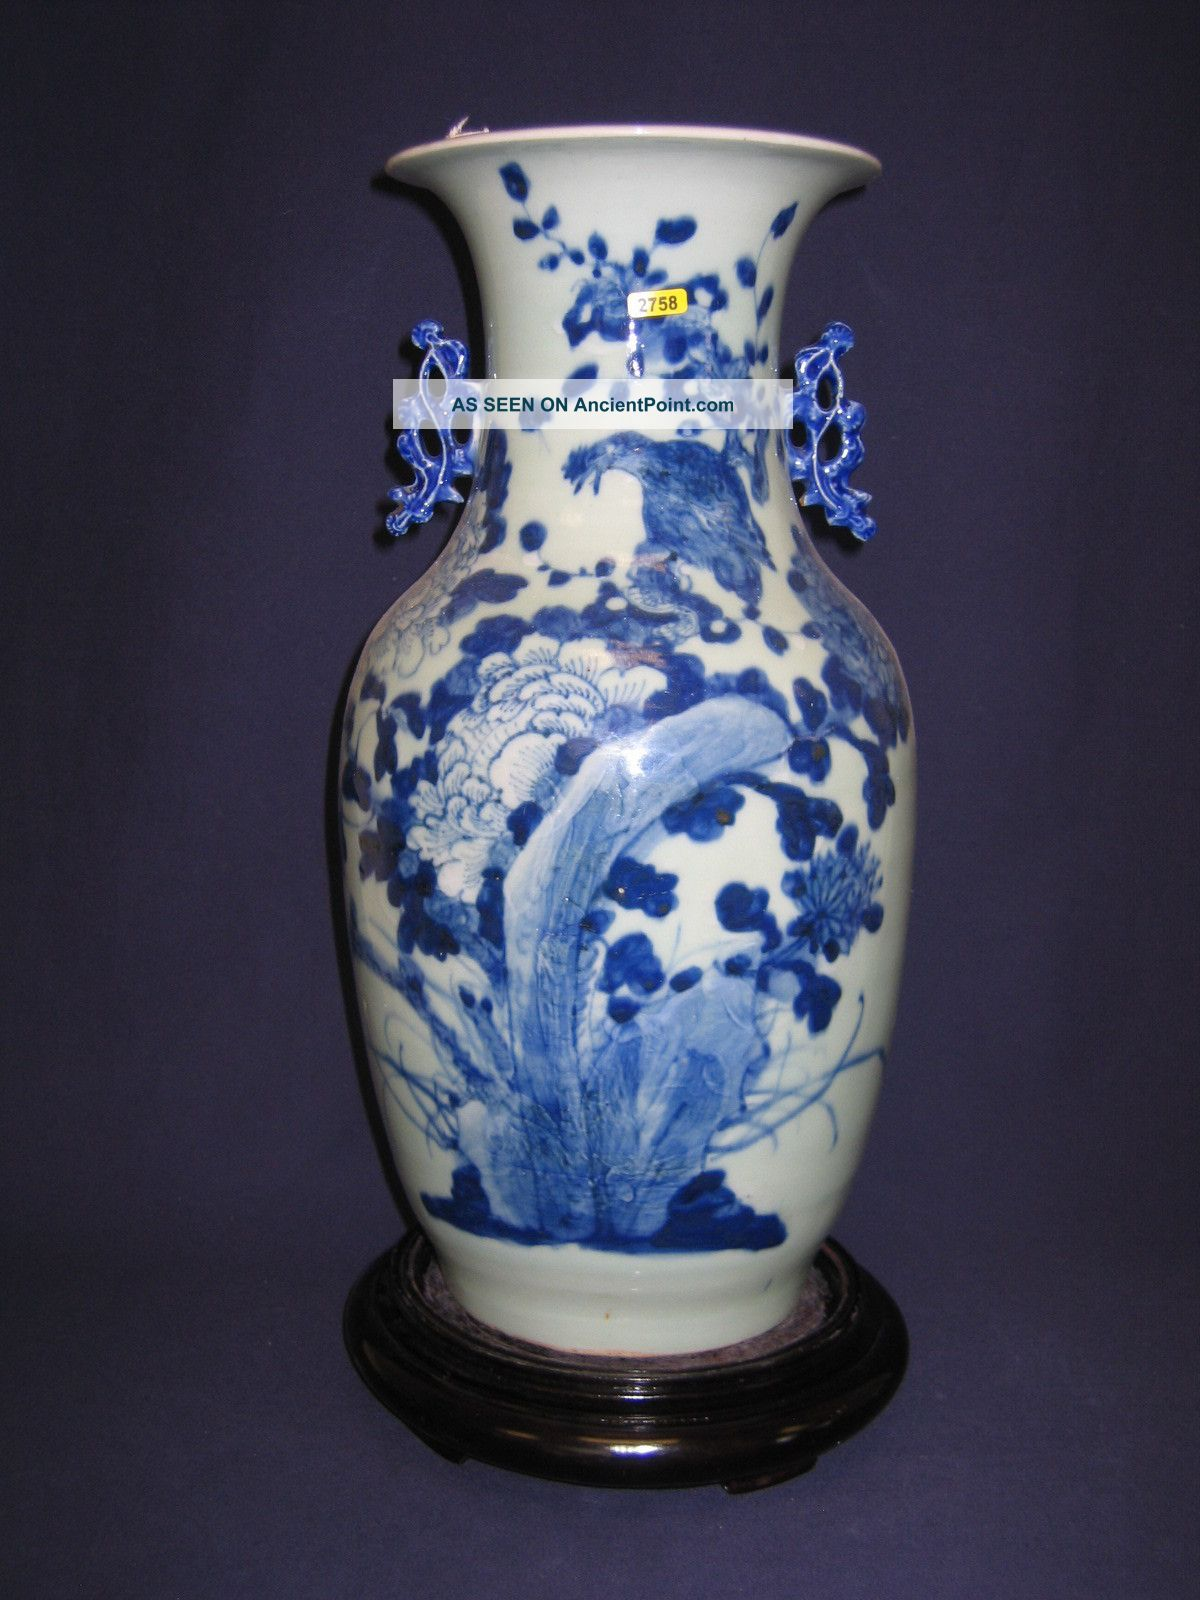 Chinese antique vase cobalt blue and white decoration reviewsmspy